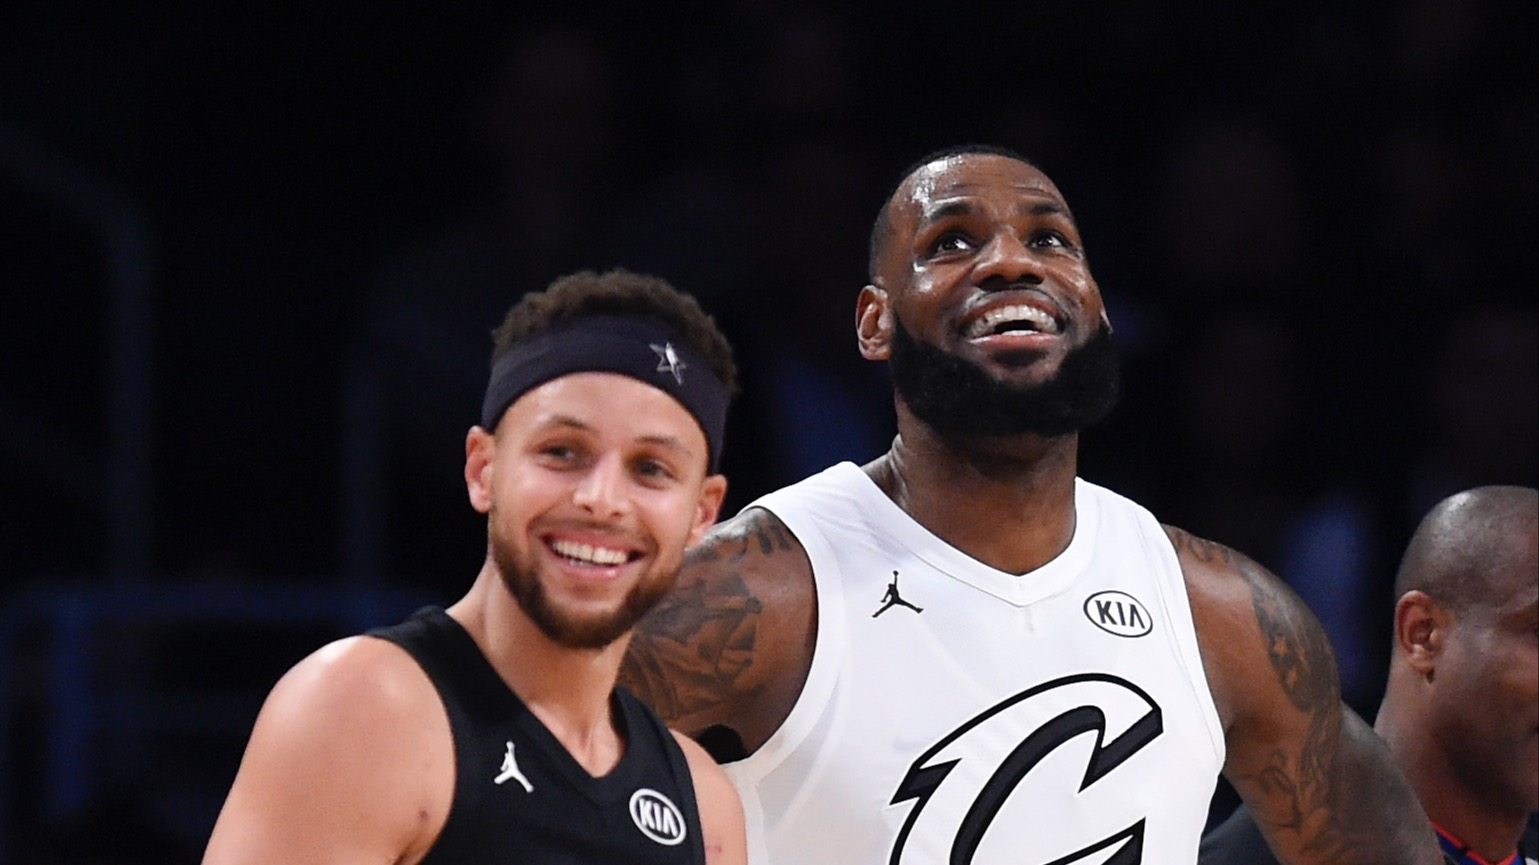 f9b52b745 2019 NBA All-Star Game odds  Team LeBron favored over Team Giannis